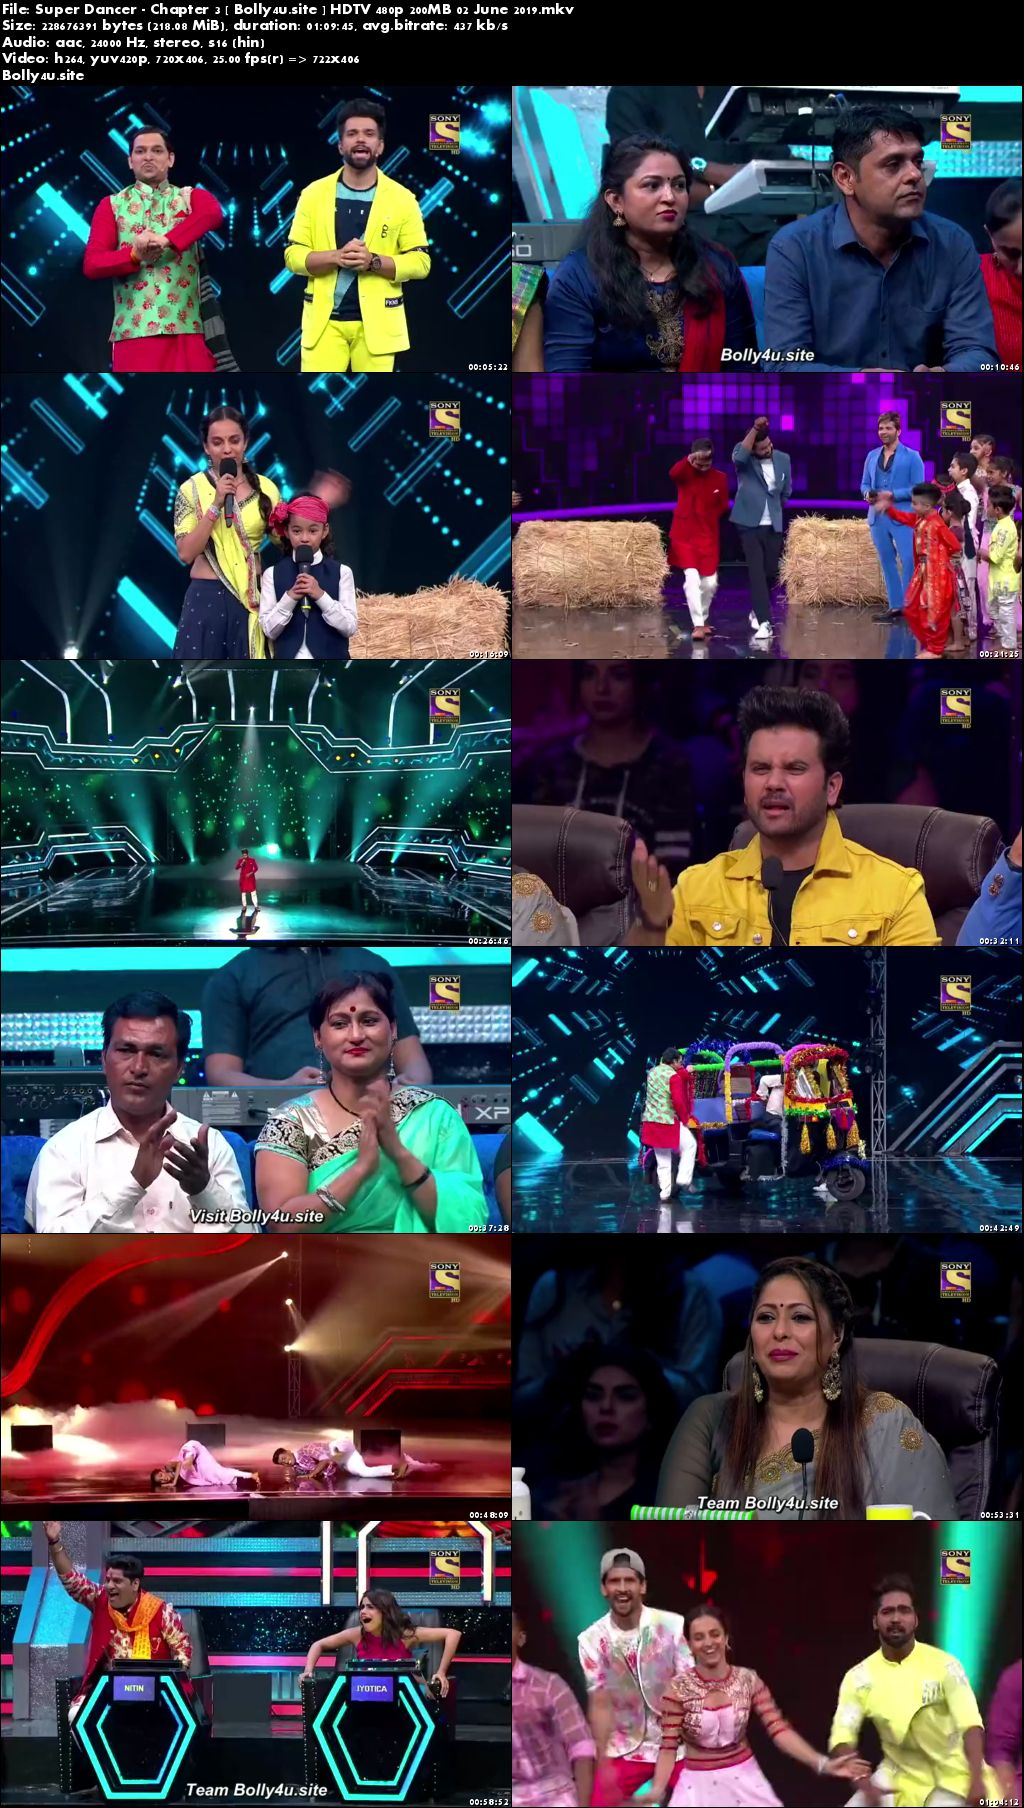 Super Dancer Chapter 3 HDTV 480p 200MB 02 June 2019 Download